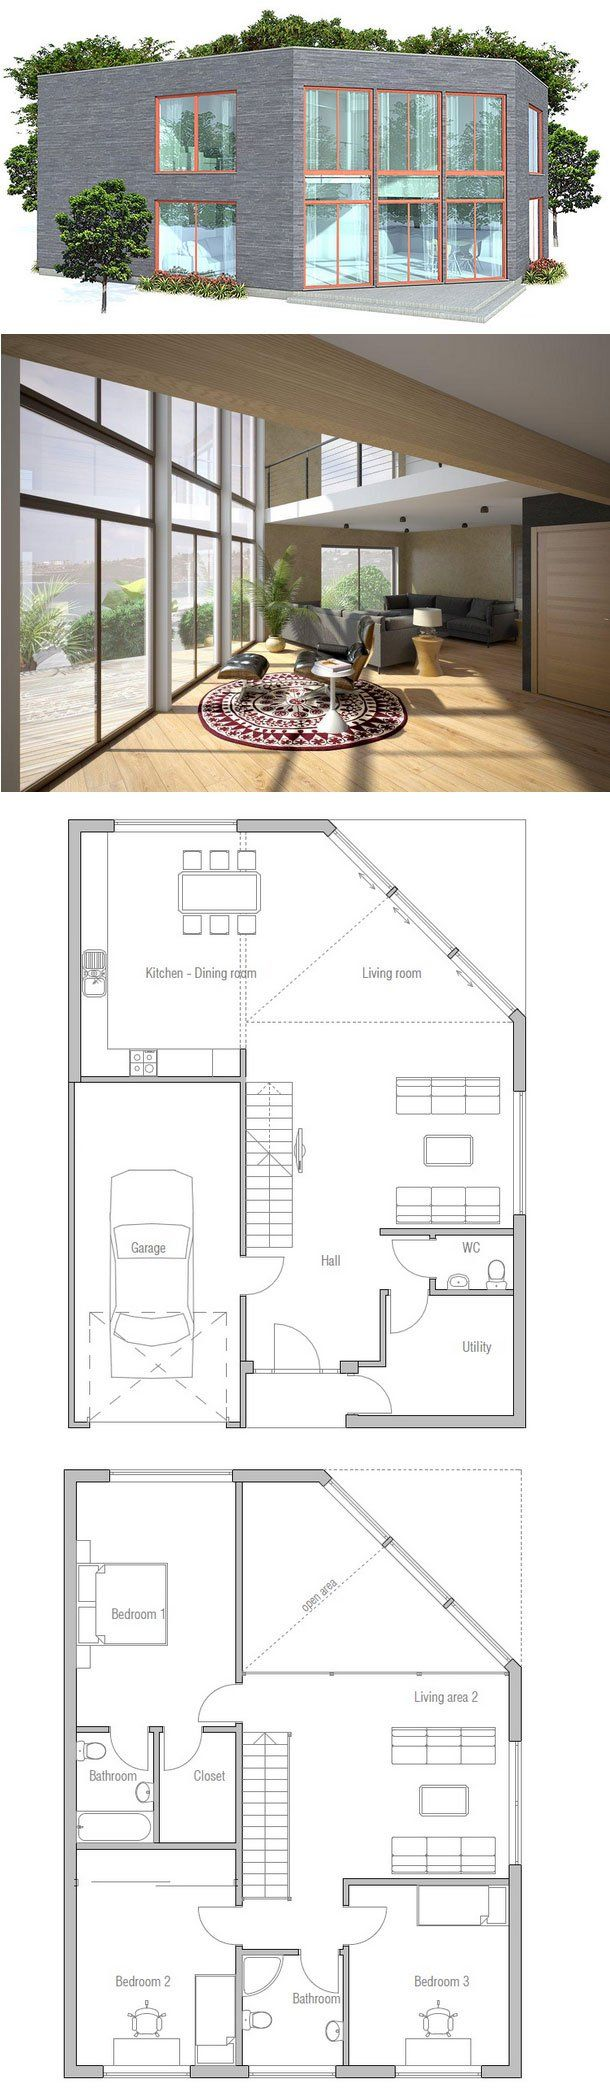 69 best narrow house plans images on pinterest narrow house contemporary home plan to narrow lot in two levels simple lines and shapes spacious